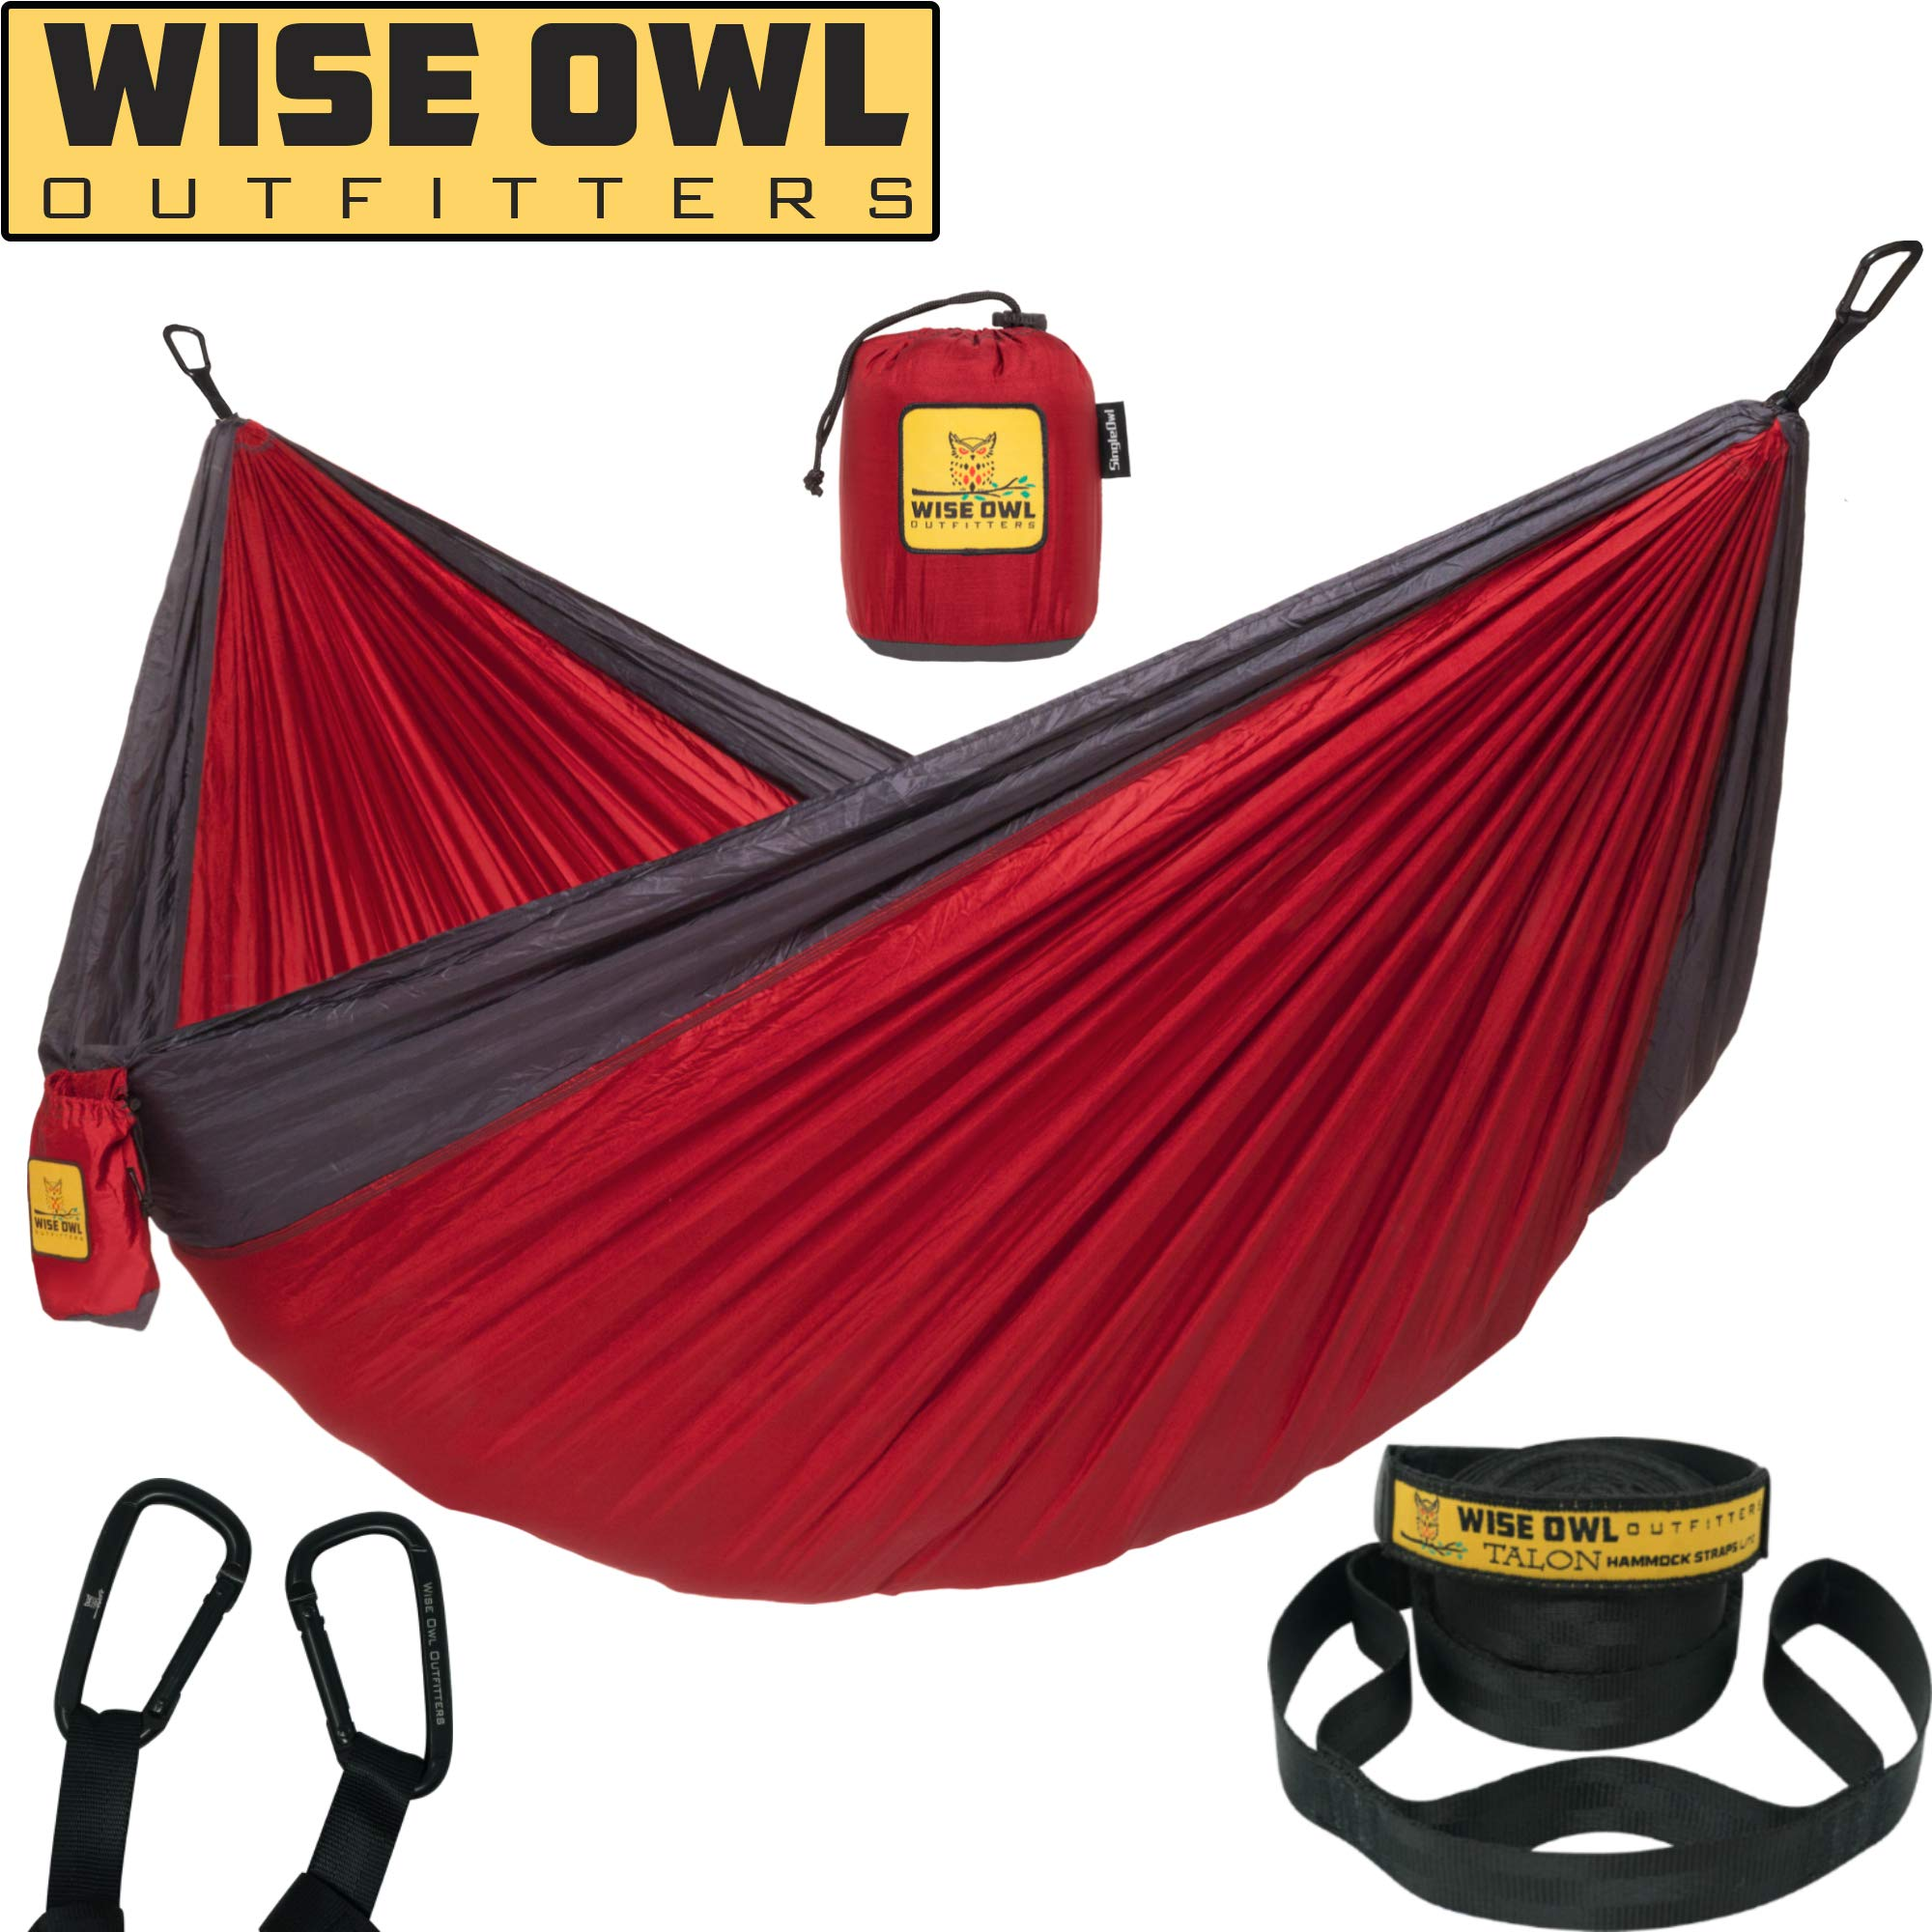 Wise Owl Outfitters Hammock for Camping Single & Double Hammocks Gear for The Outdoors Backpacking Survival or Travel - Portable Lightweight Parachute Nylon SO Red & Charcoal by Wise Owl Outfitters